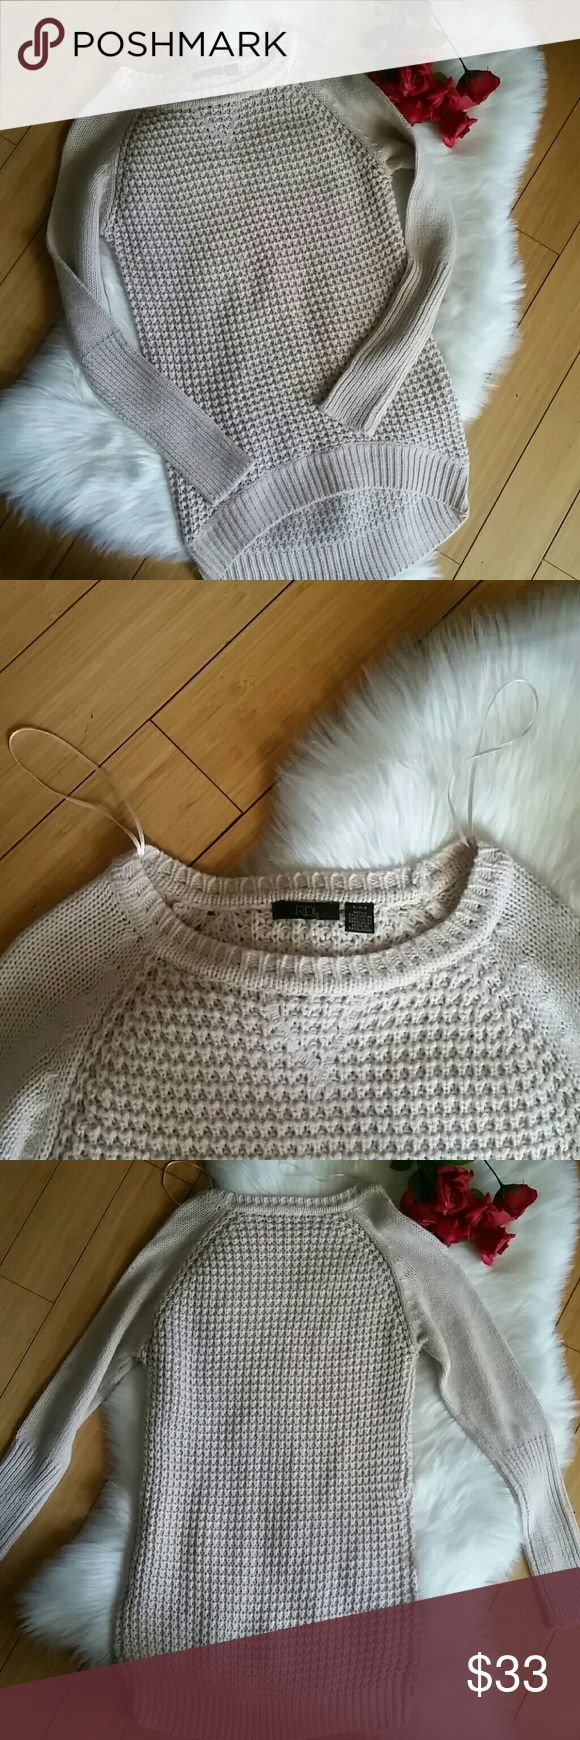 Long knit sweater Tan long oversized sweater. Sweater weather is coming up!! Would look amazing with jeans and boots of any kind 😍😍 make an offer! RDI Sweaters Crew & Scoop Necks